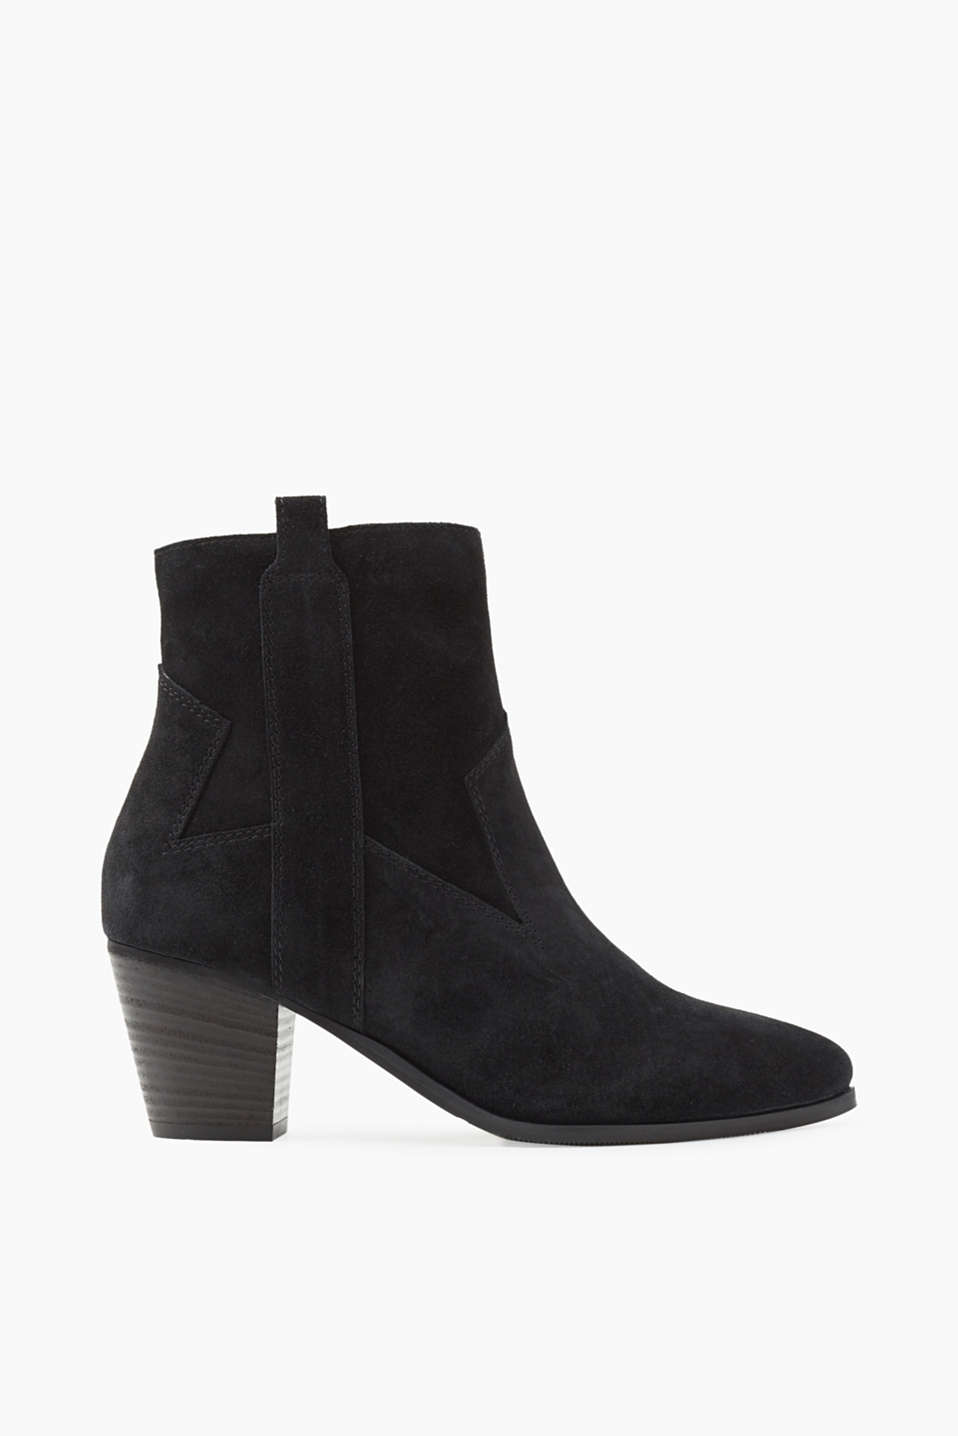 With a practical inside zip and a block heel: Ankle boots made of suede cowhide